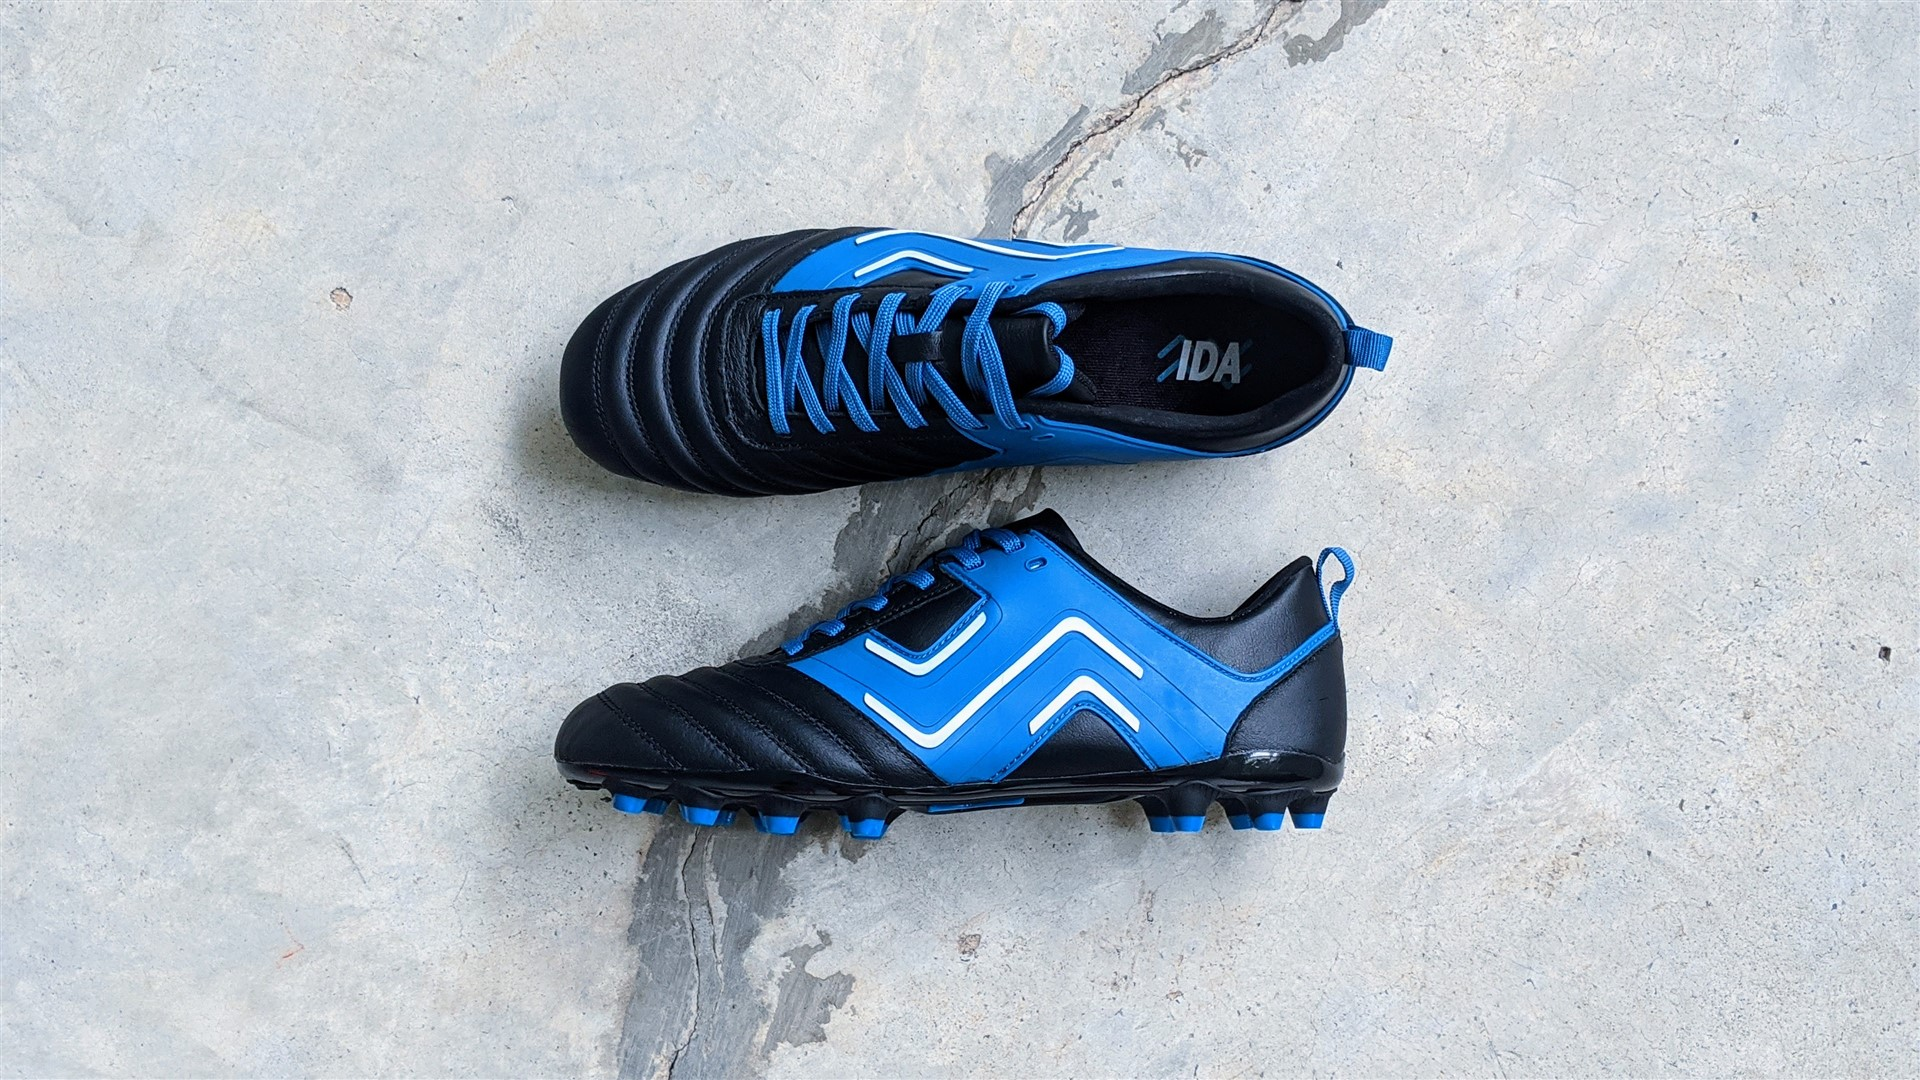 Ida sports football boots soccer cleats for women